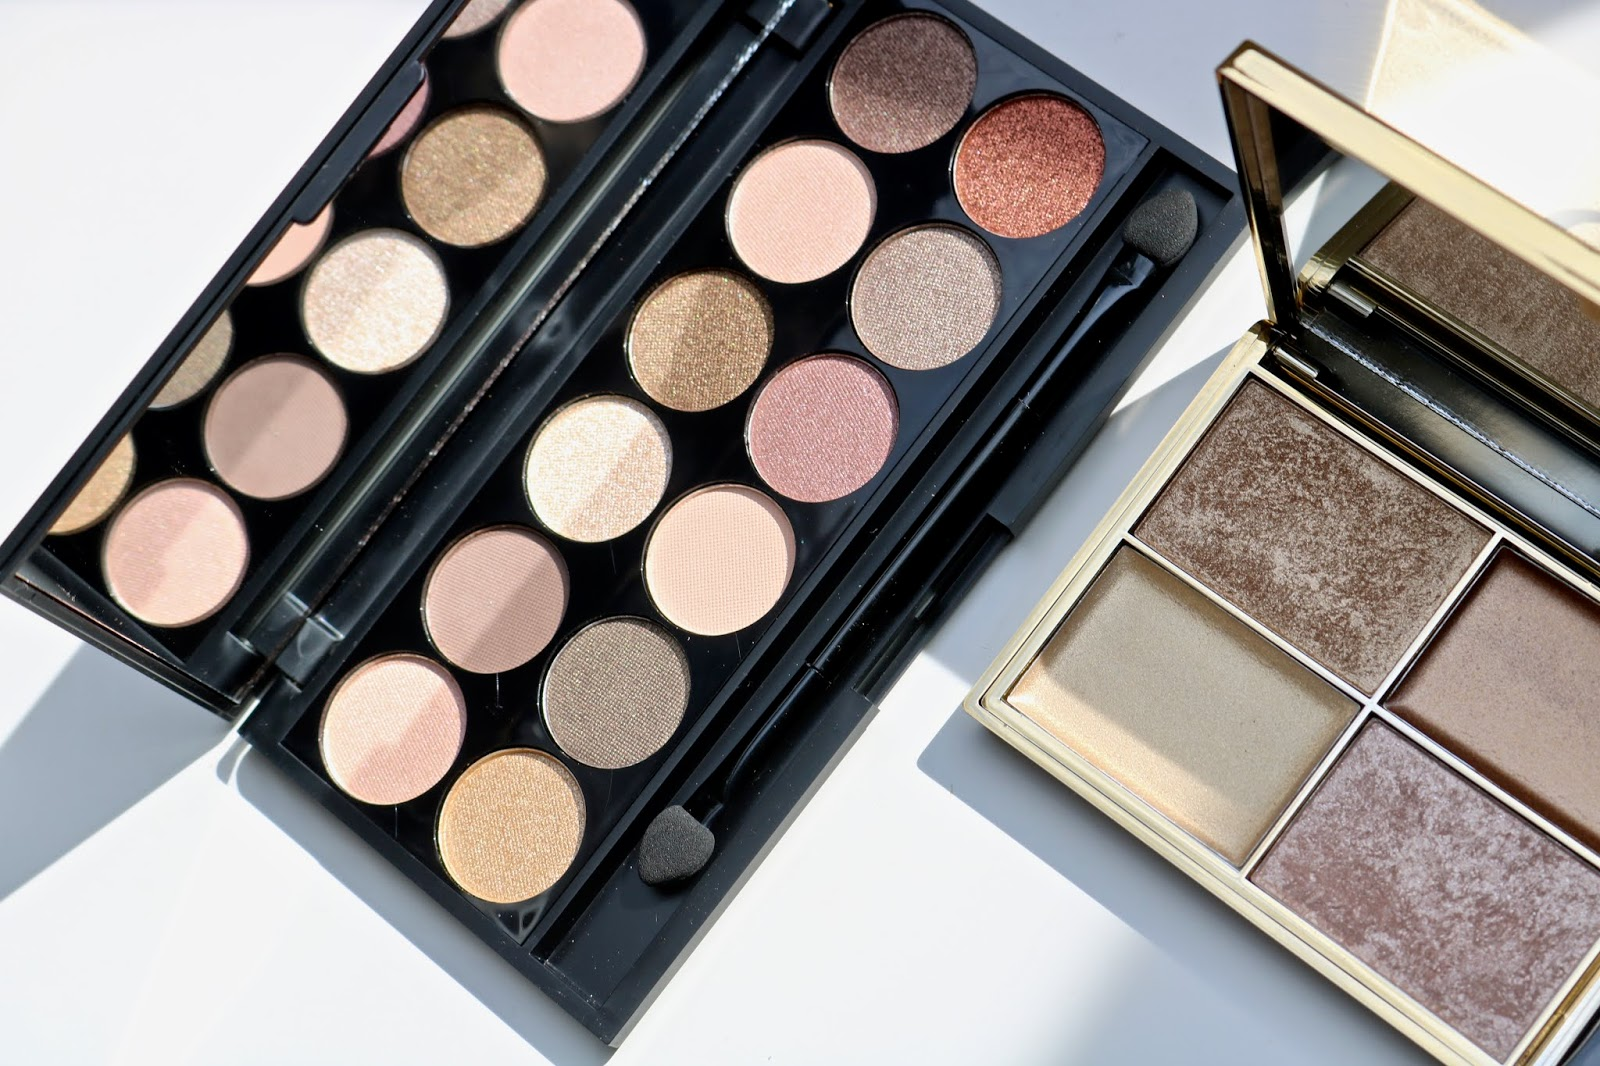 Review | Sleek highlighting palette Cleopatra's kiss + Sleek eyeshadow palette I Divine All Night Long